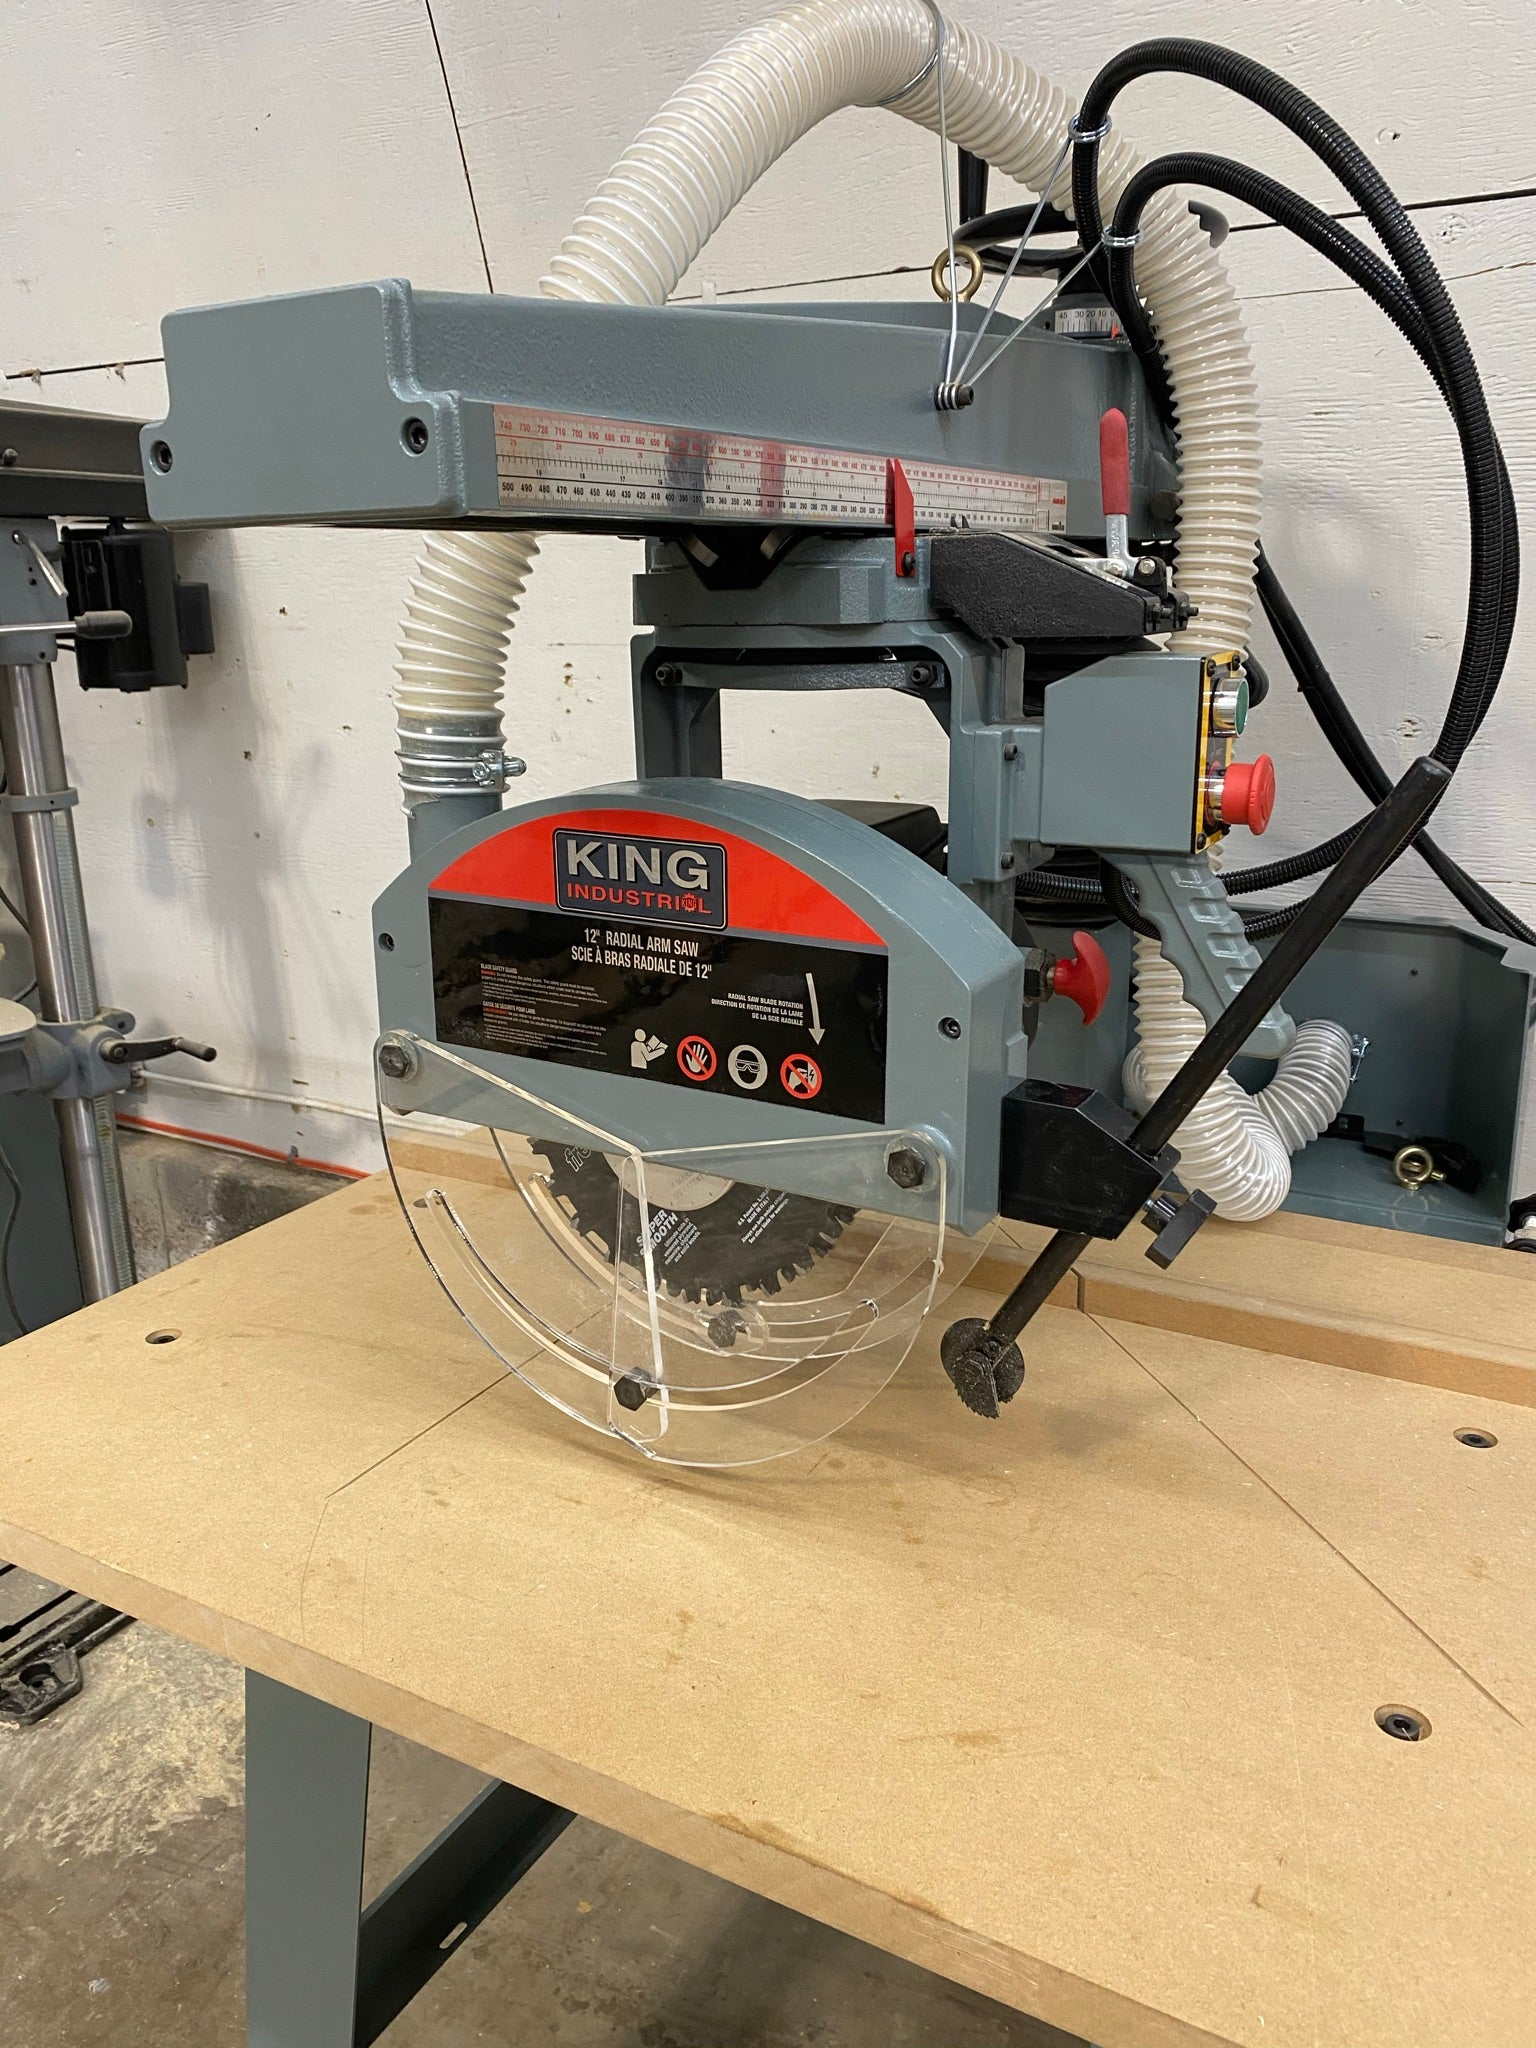 King Canada Tools - Radial Arm Saw